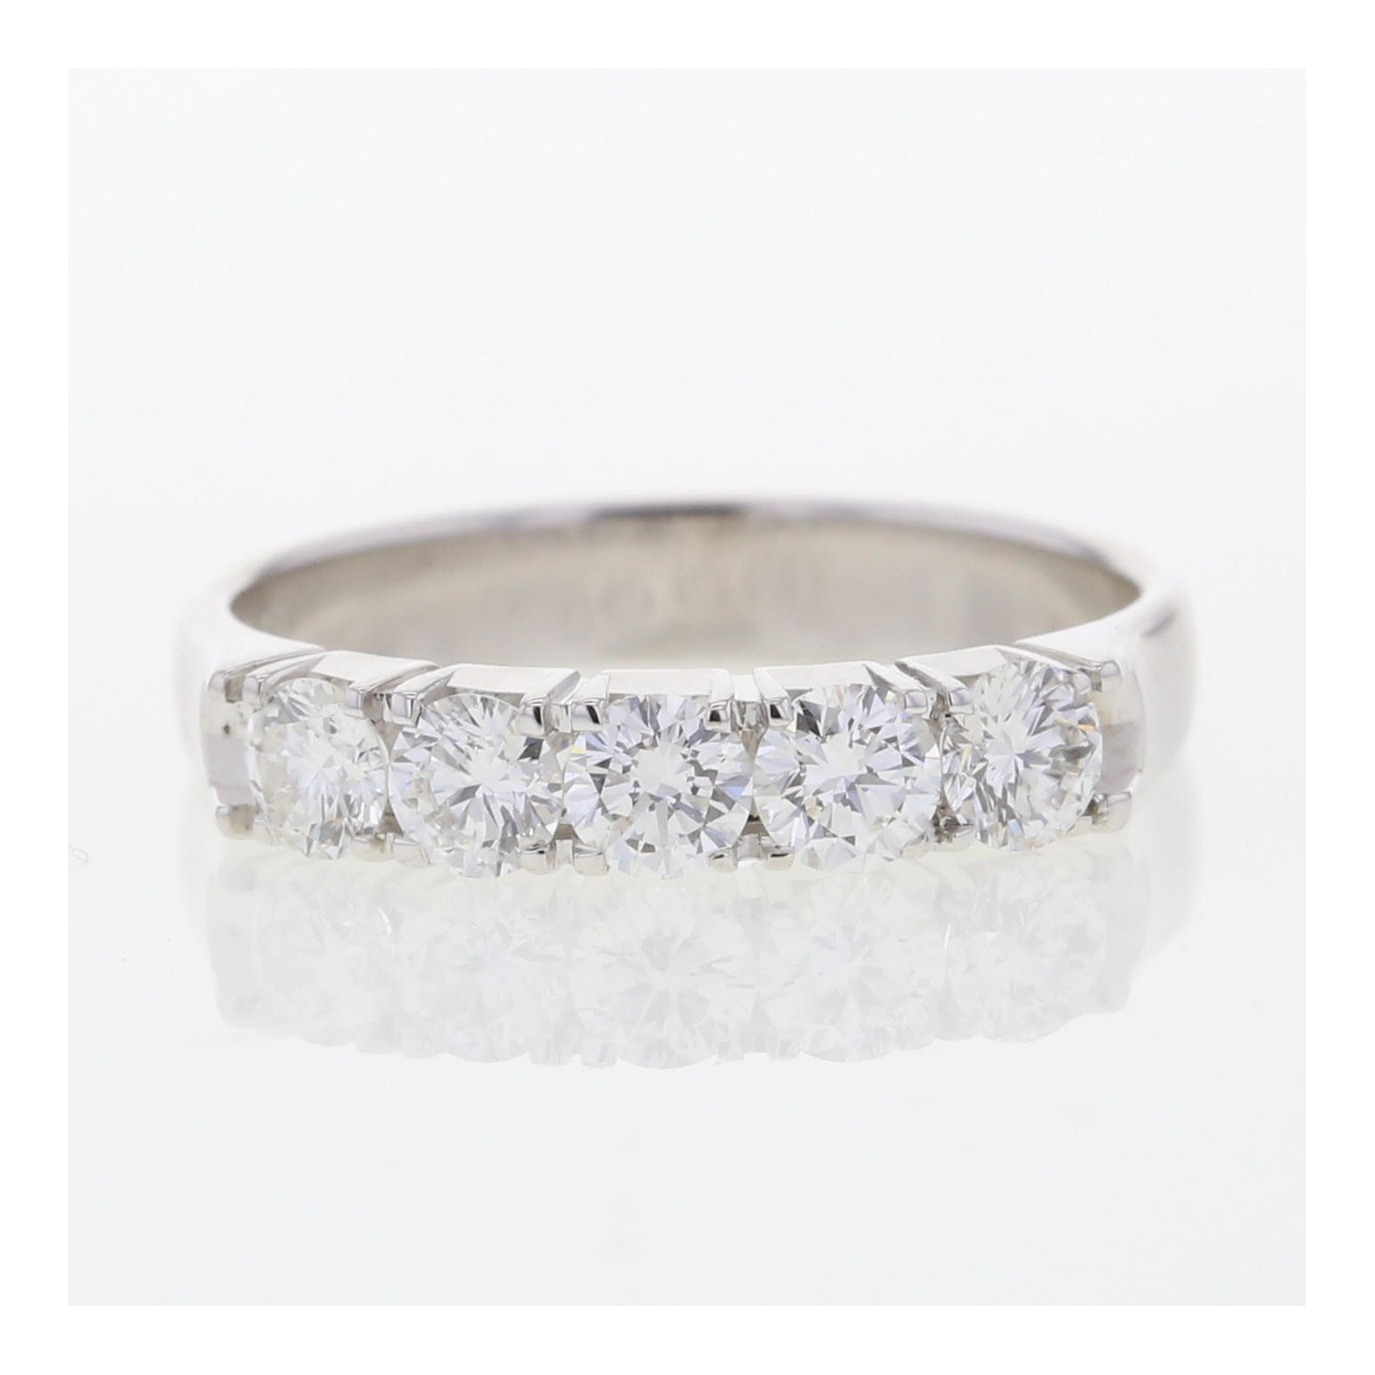 18ct white gold ring set with 5 diamonds.